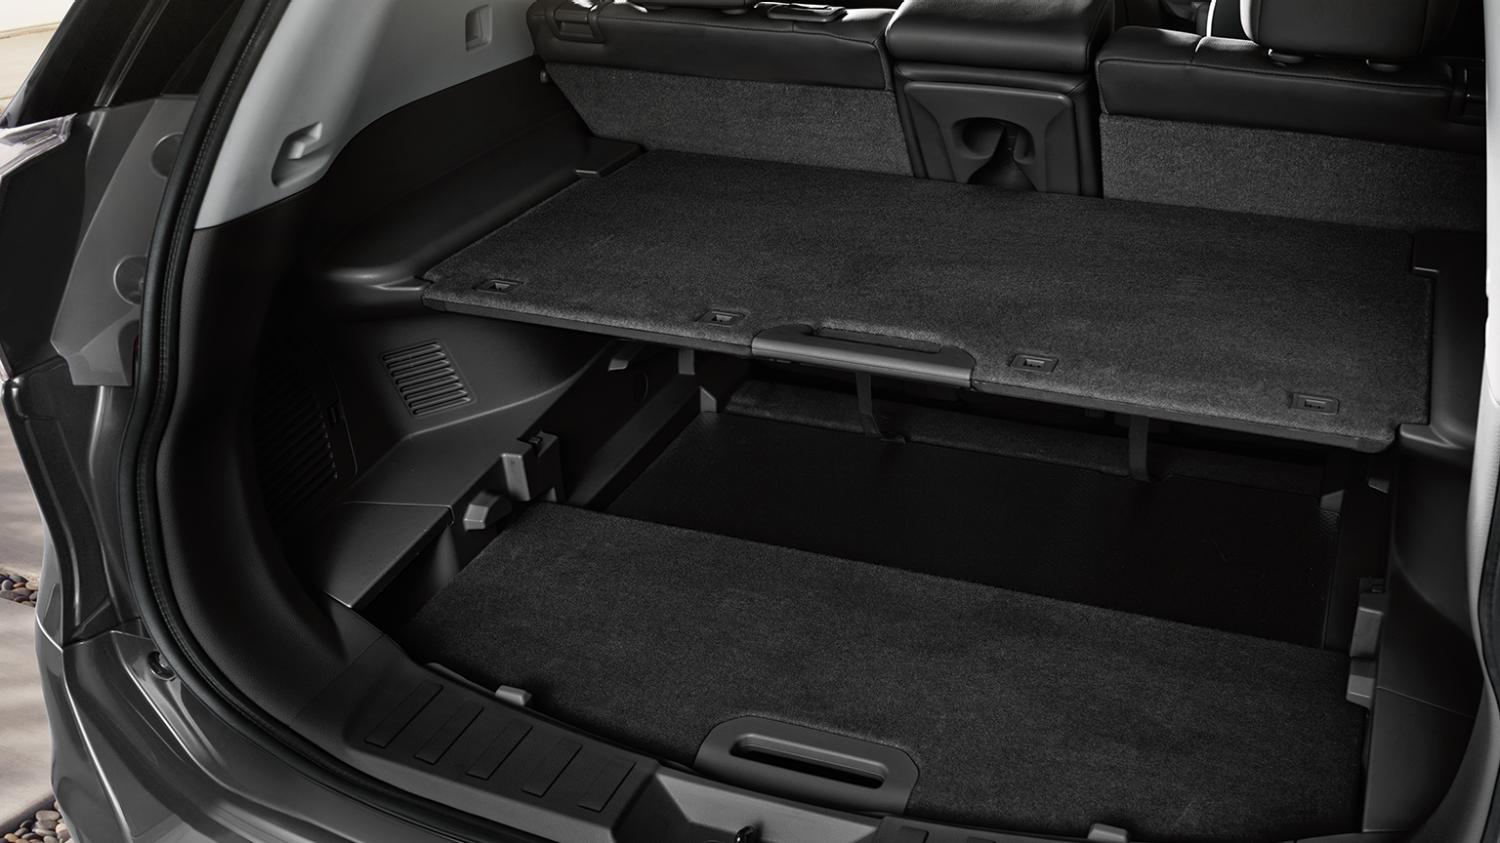 7 seater & 4x4 car features - Layered storage space | Nissan X-Trail